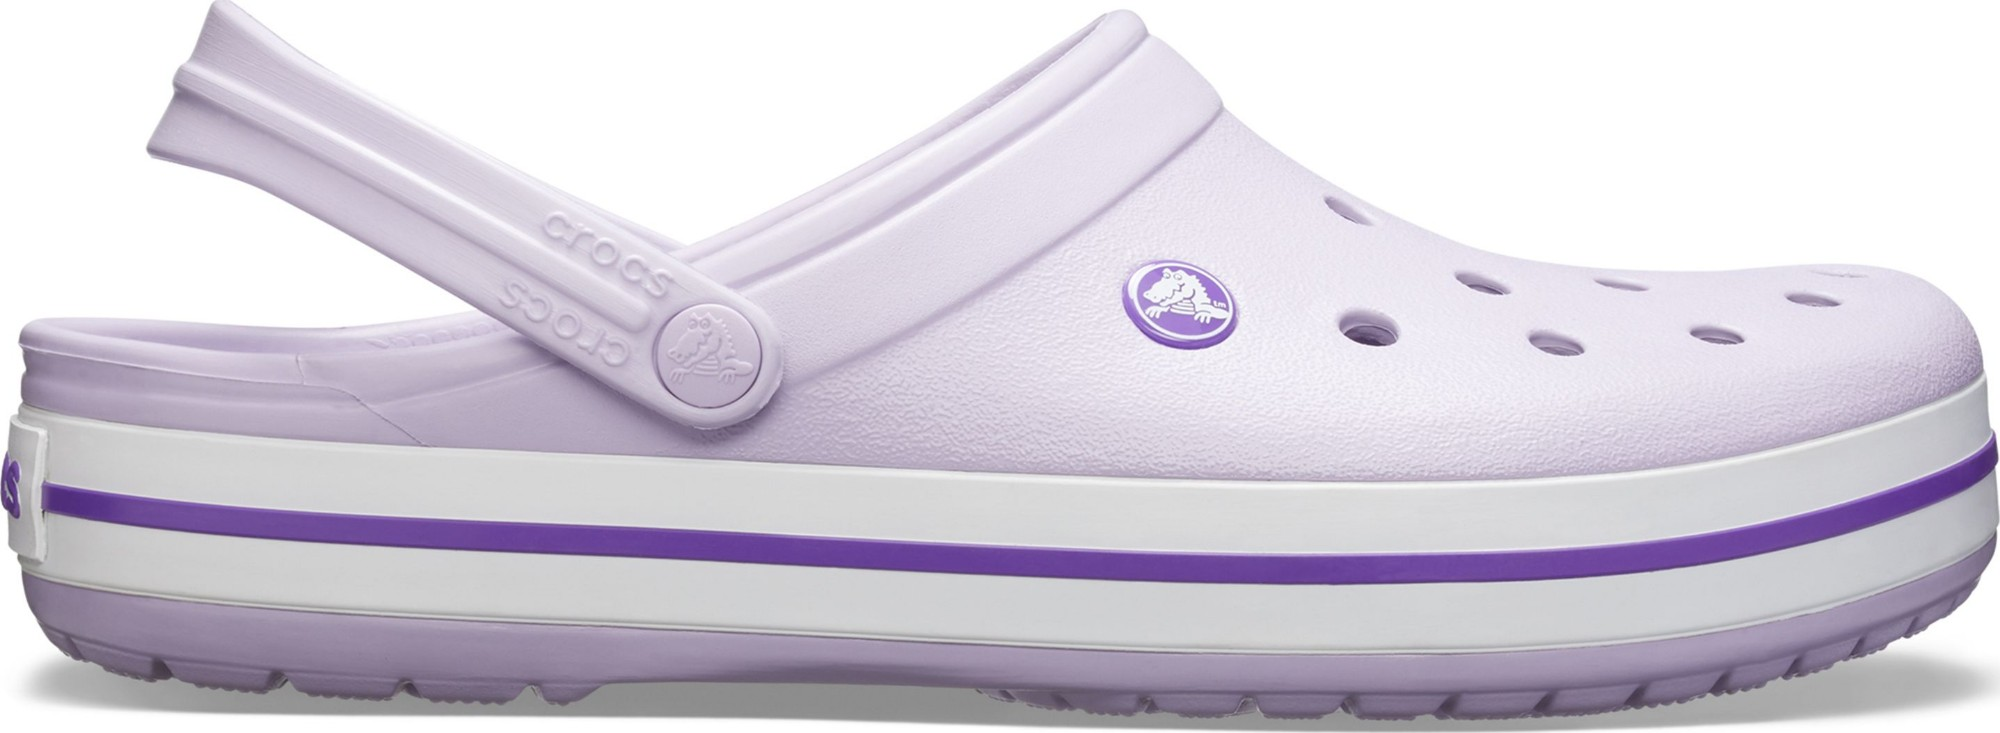 Crocs™ Crocband™ Lavender/Purple 37,5